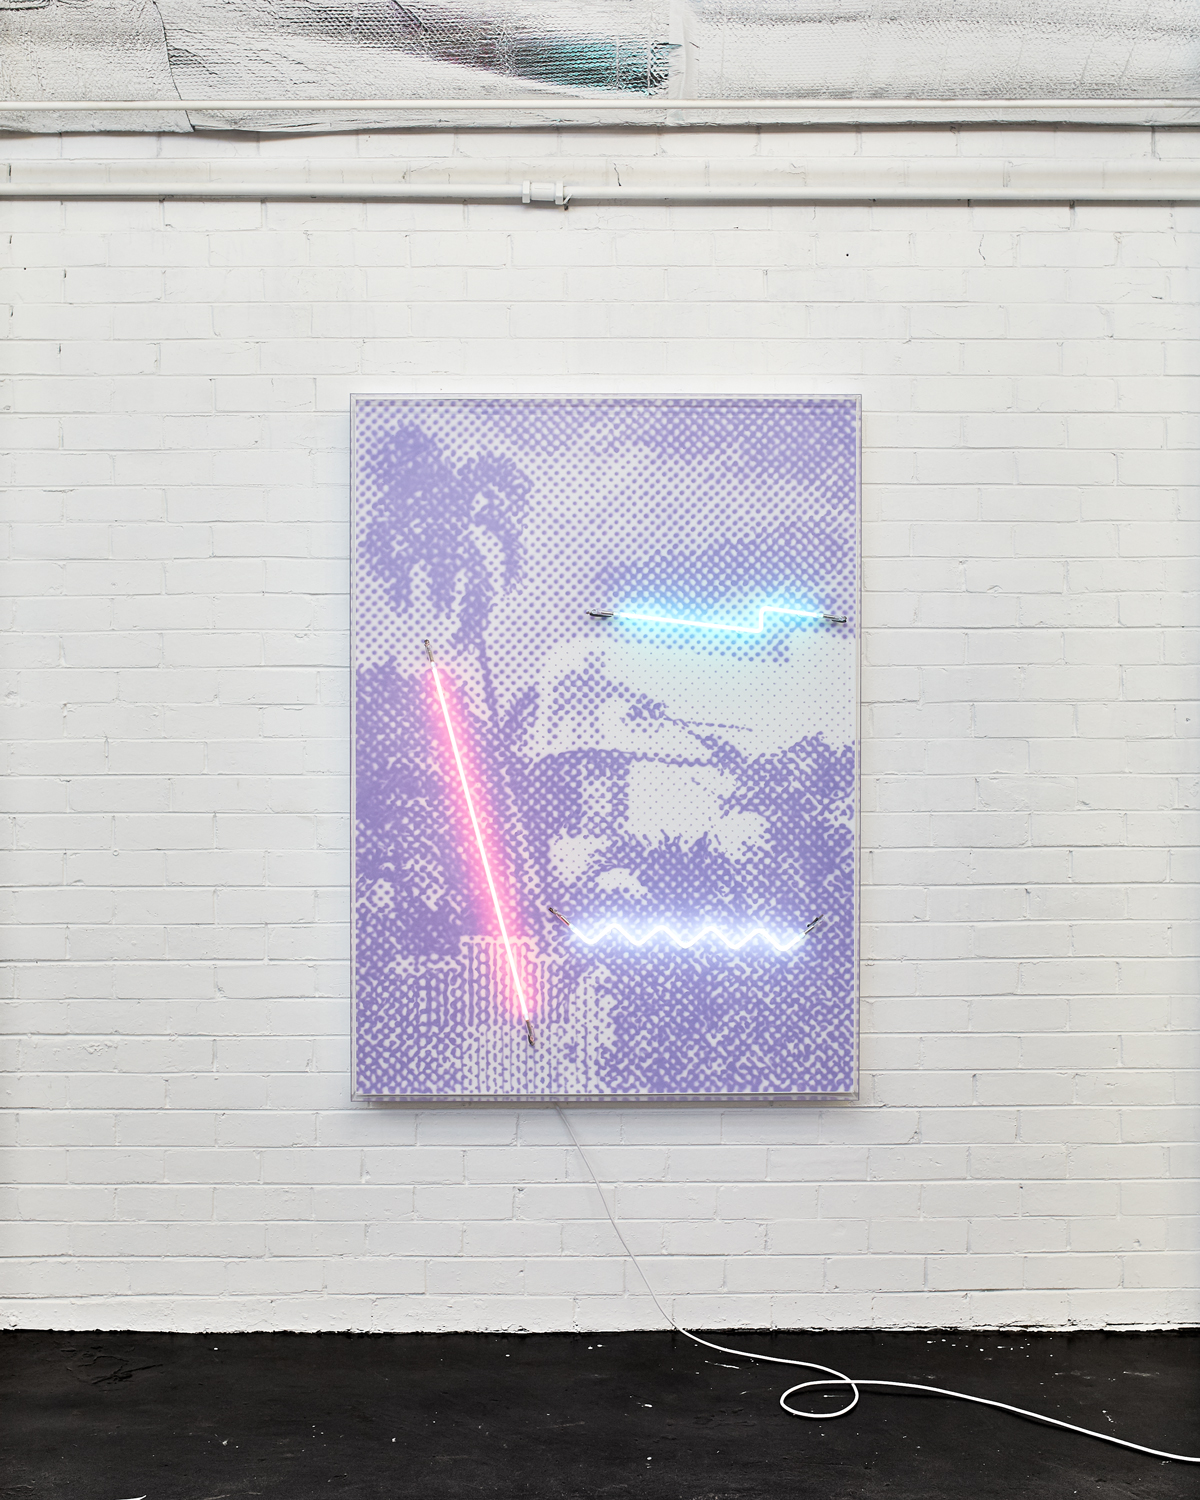 Shadow of a Palm  Airbrush acrylic polymer and neon on dibond, acrylic frame 115x160cm